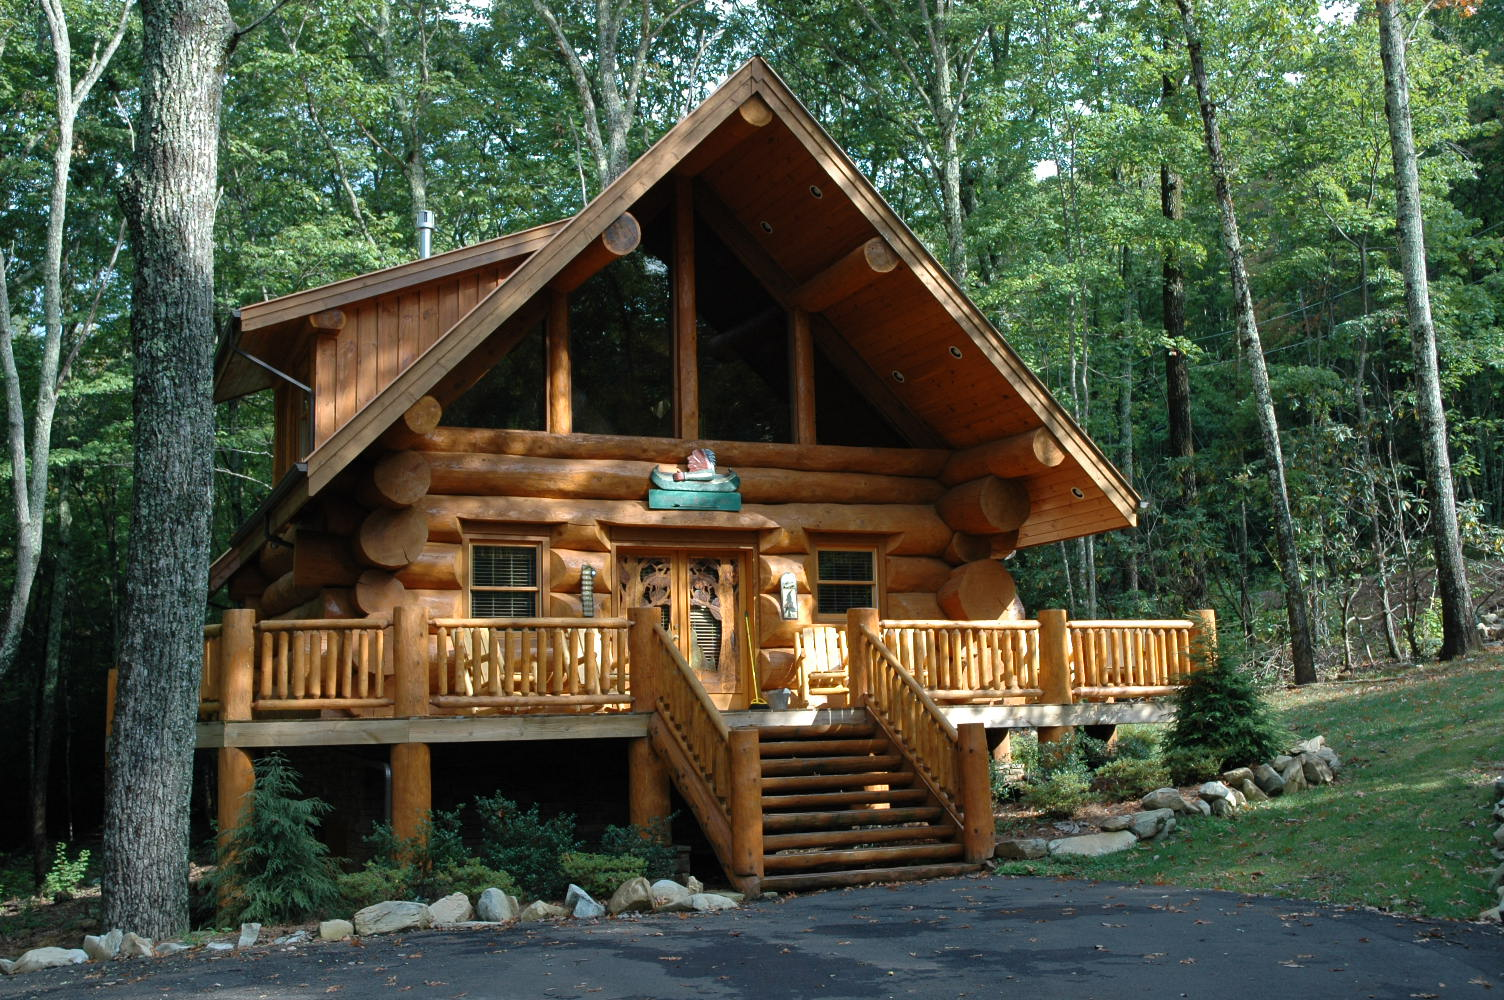 Share for Chalet log home